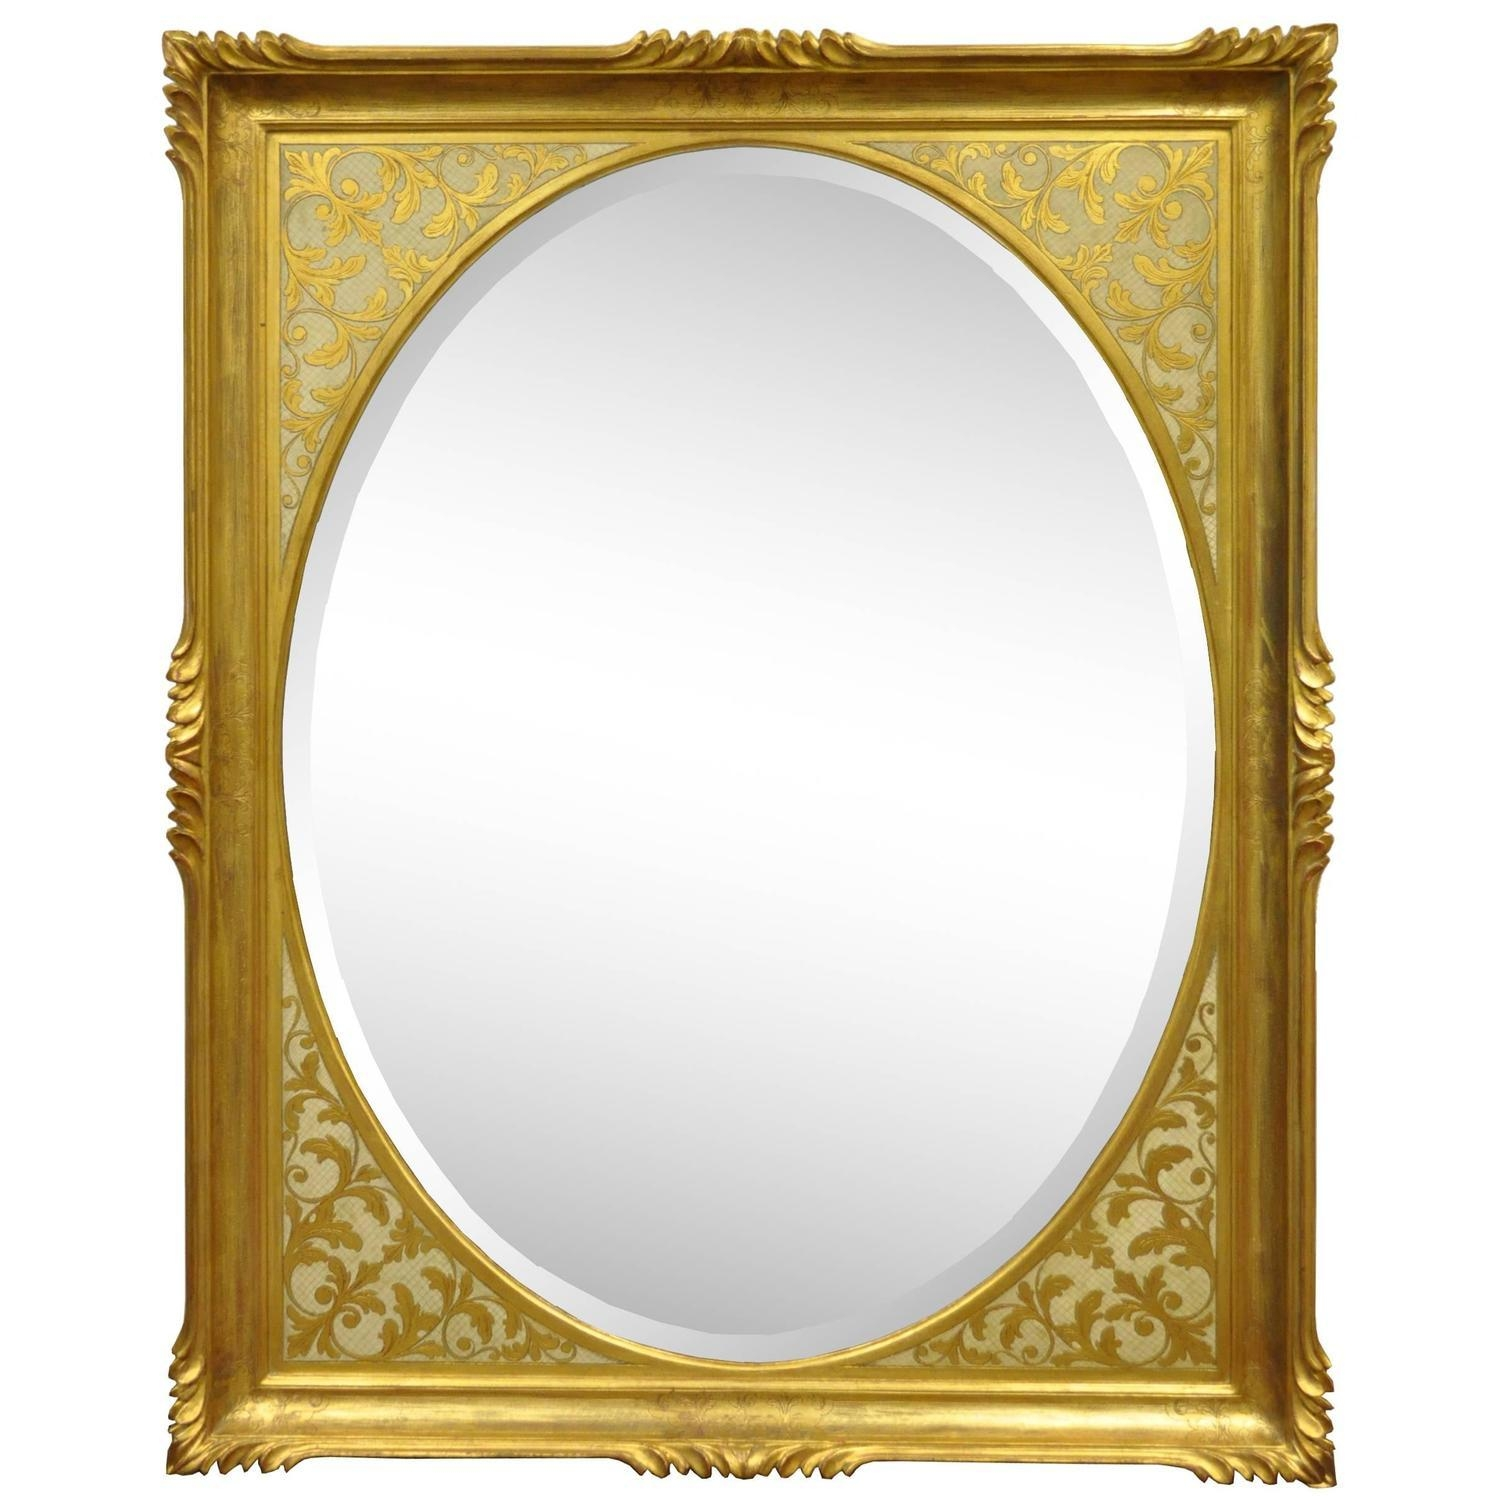 Vintage 1960S Italian Florentine Gold Gilt Carved Wood Wall Mirror Throughout Gold Gilt Mirror (Image 17 of 20)